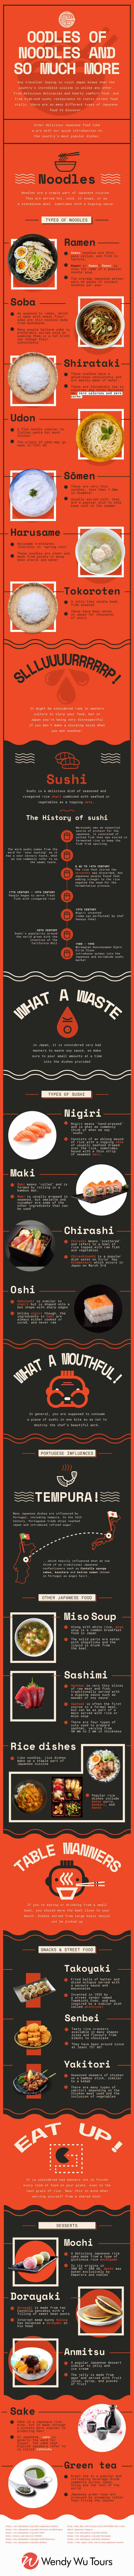 Oodles of Noodles – A Guide to Japanese Food